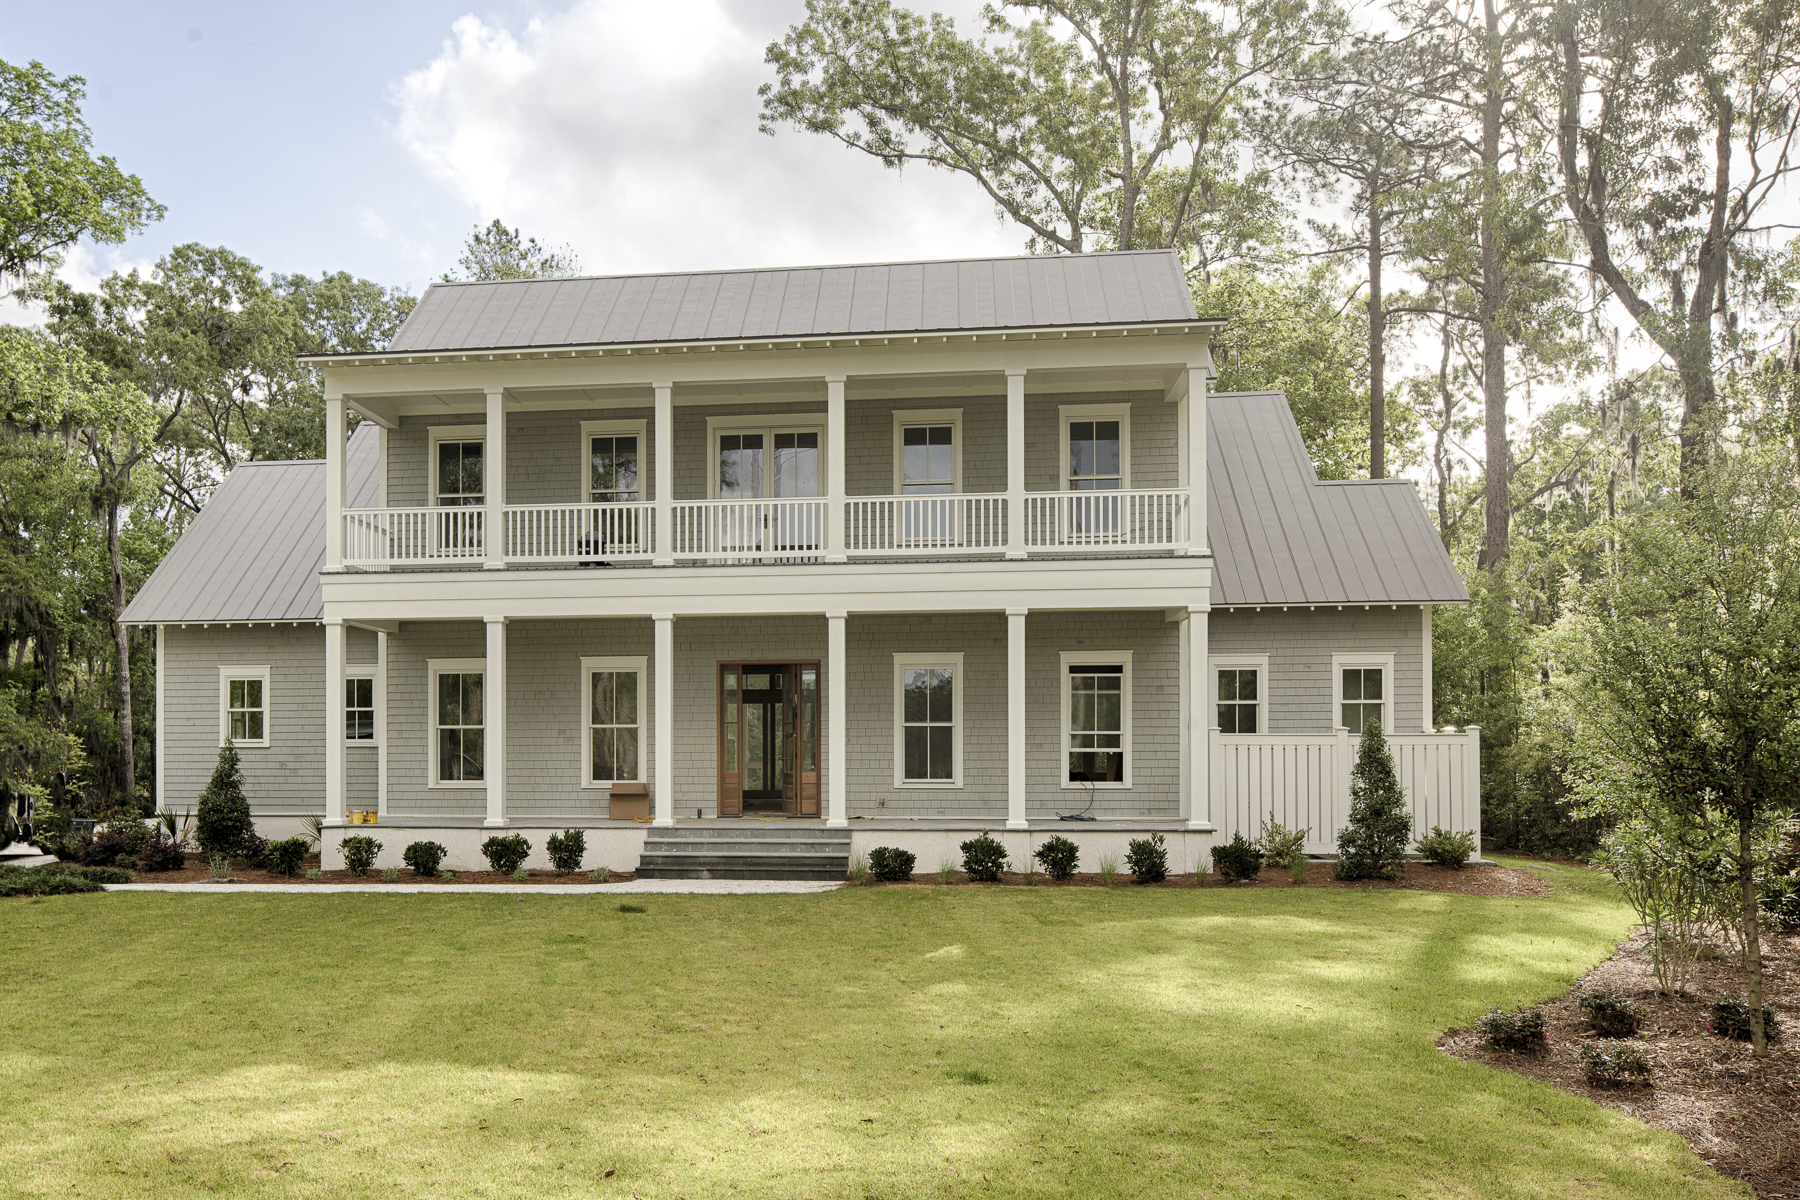 Single Family Home for Sale at 15 Calder Park Road Palmetto Bluff, Bluffton, South Carolina, 29910 United States